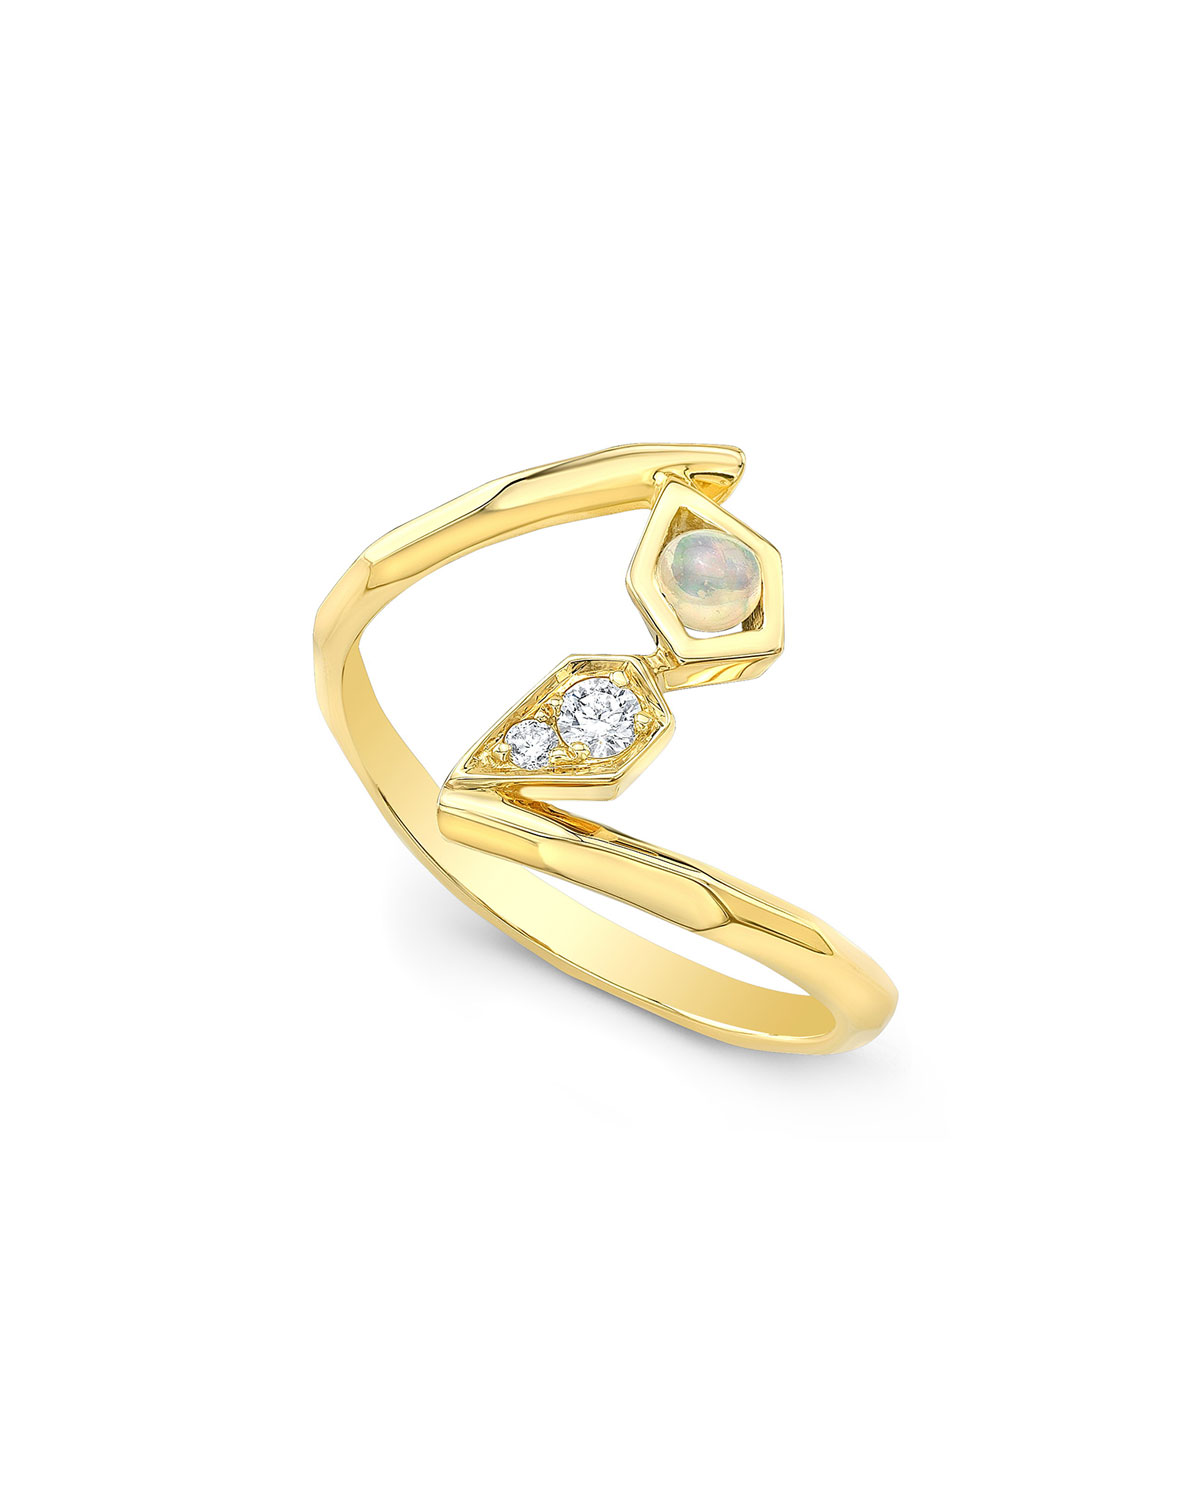 RON HAMI 14K Gold Asymmetric Diamond & Opal Ring